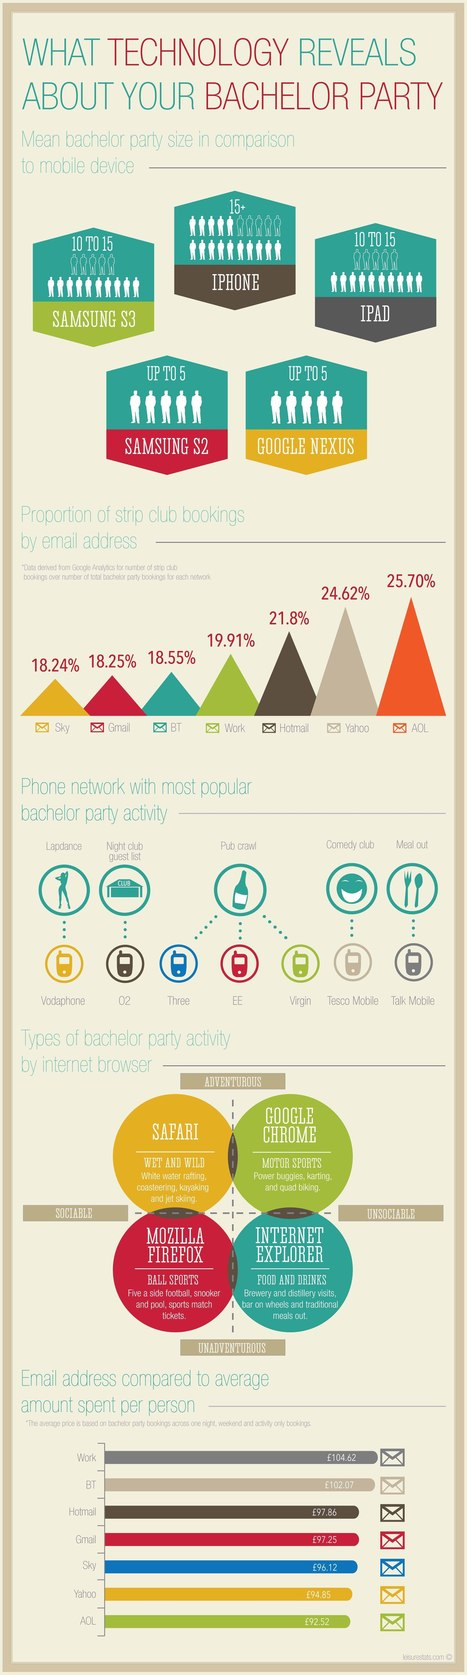 How Technology Reveals About Your Stag Party Infographic   Business 2 Community   Digital-News on Scoop.it today   Scoop.it